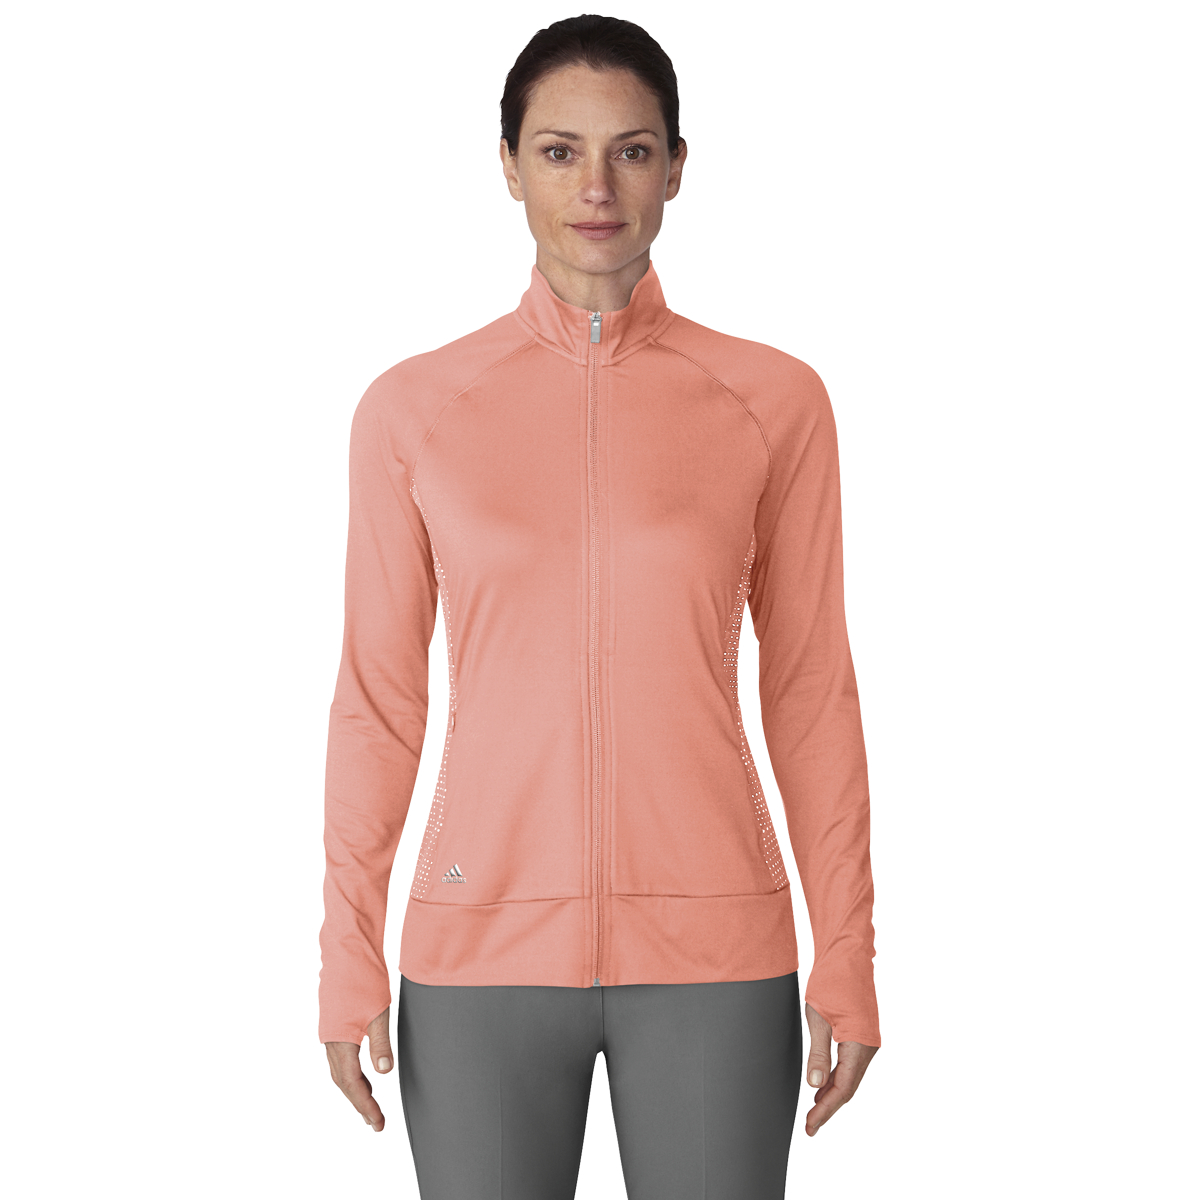 buy online 22f5e 1b291 2018 adidas Women Rangewear Full Zip Golf Jacket Chalk Coral X-small. About  this product. Picture 1 of 2 Picture 2 of 2